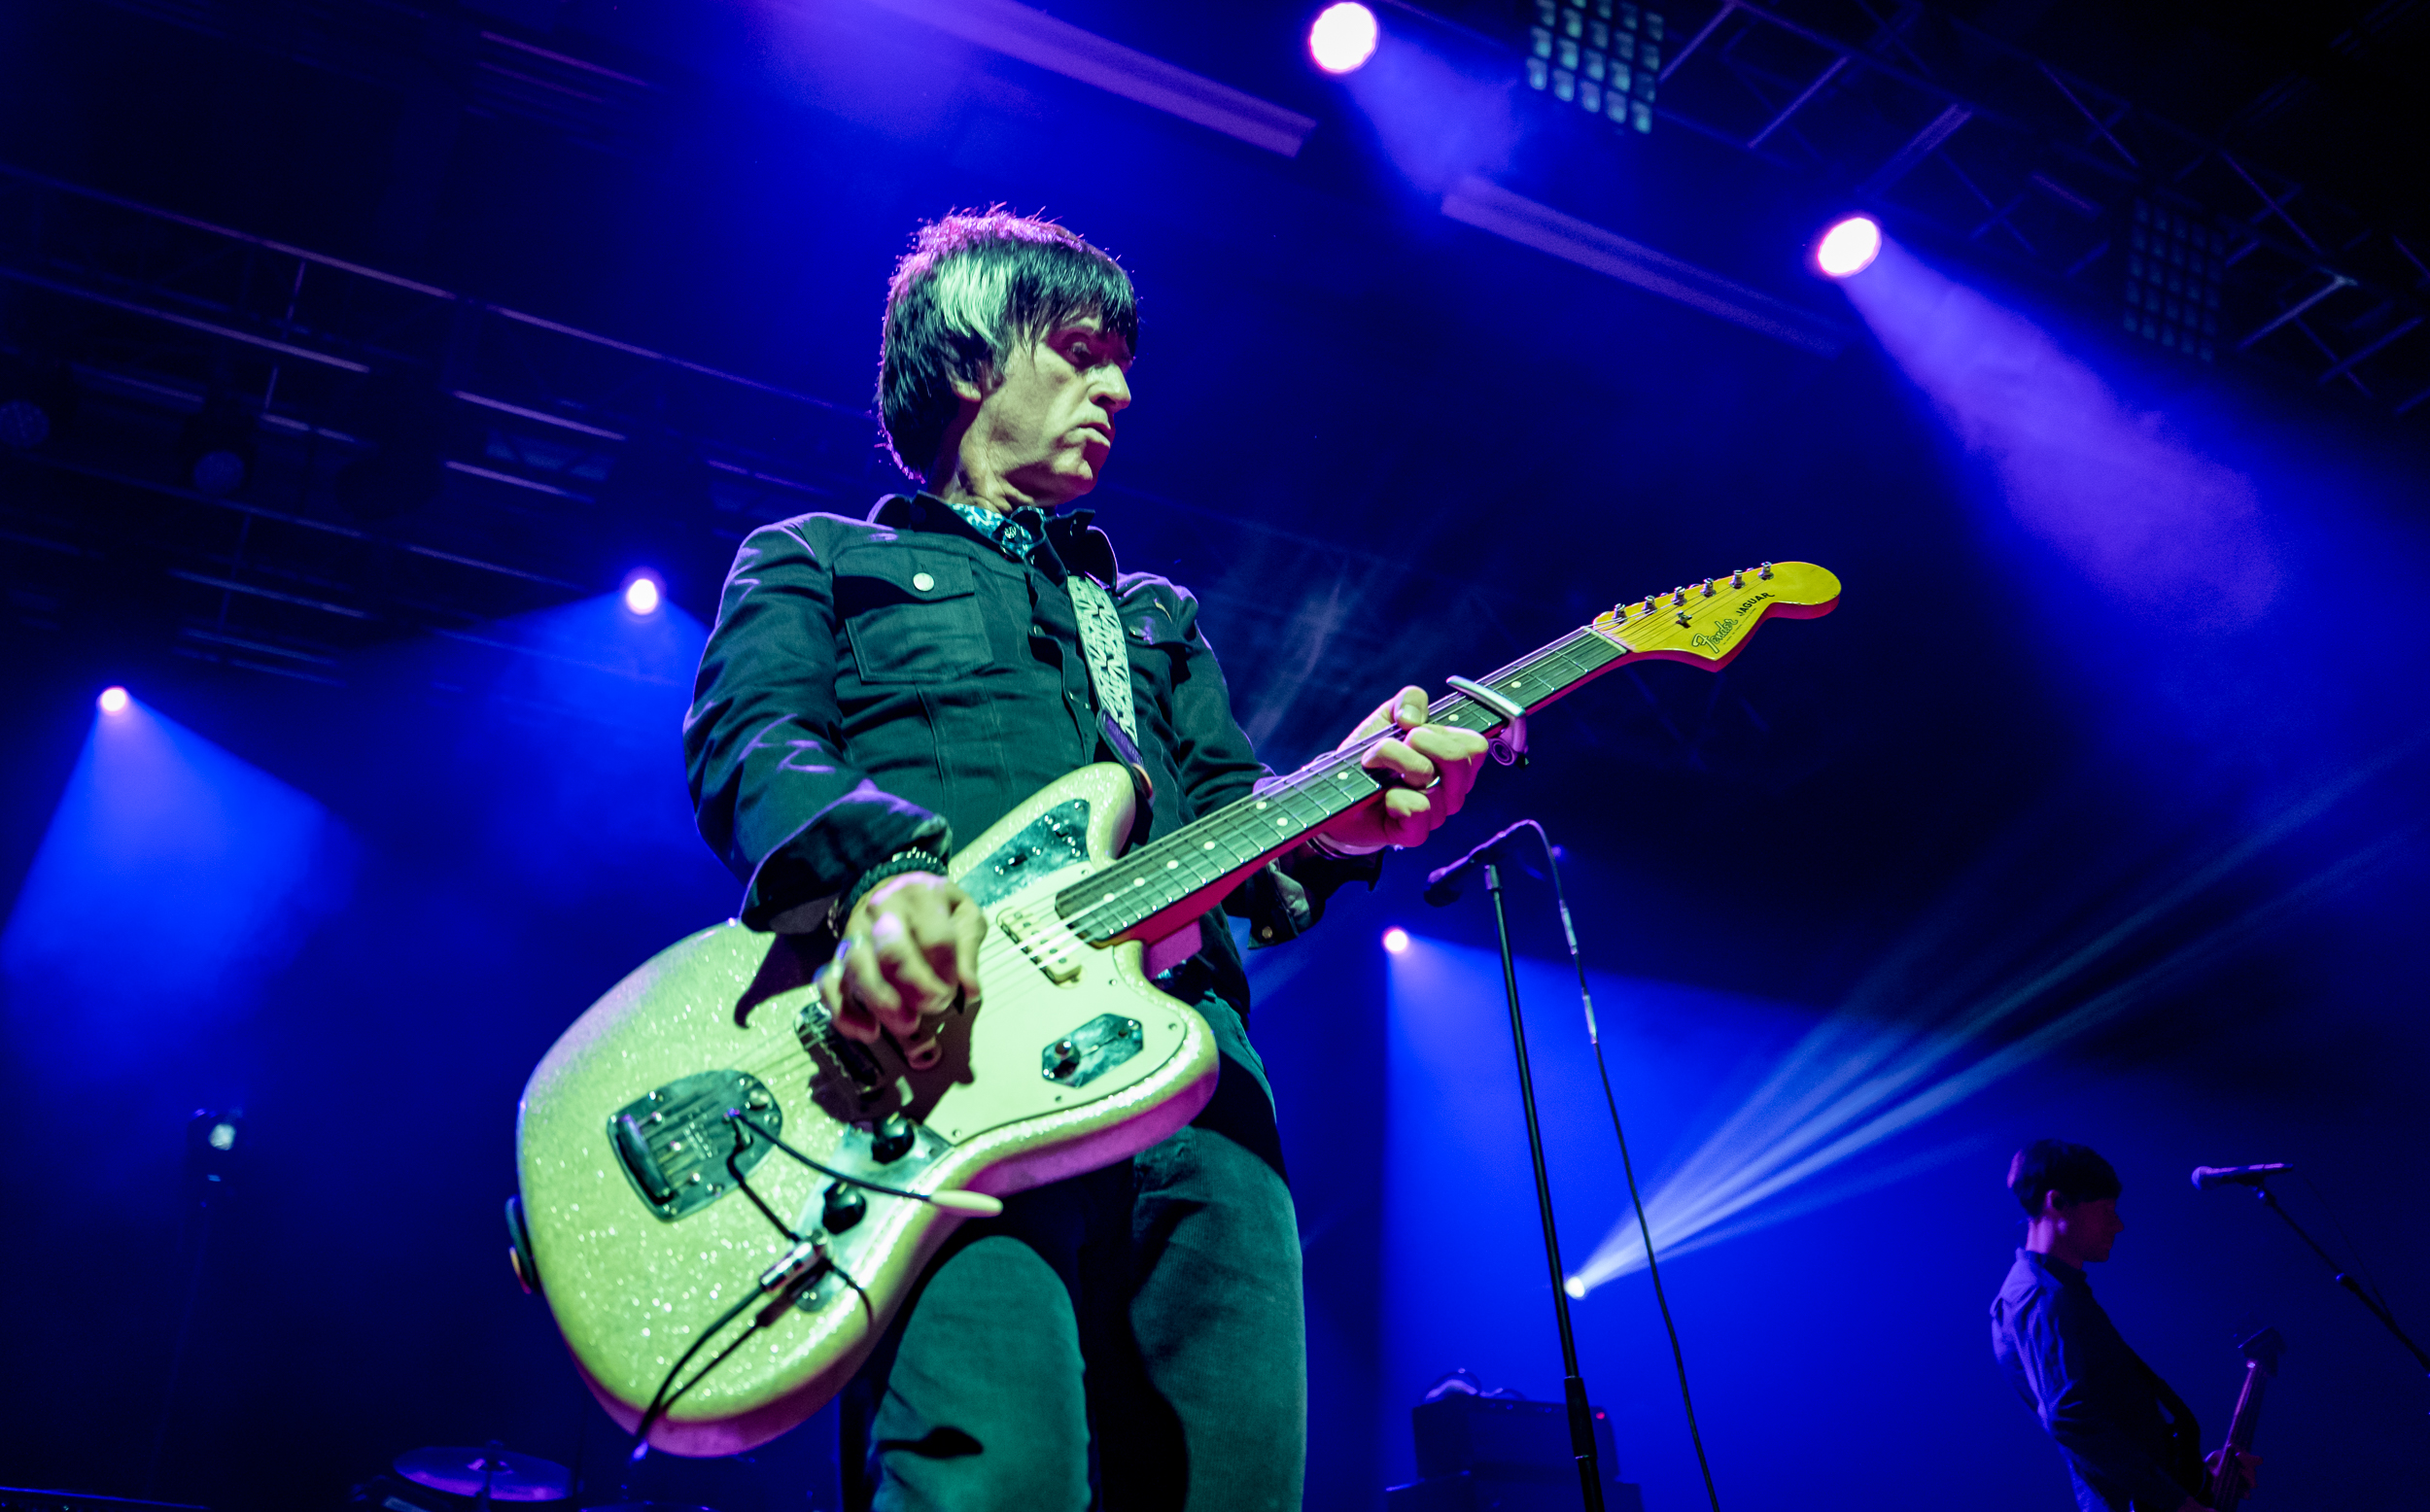 Johnny Marr_SteveRose-31.jpg